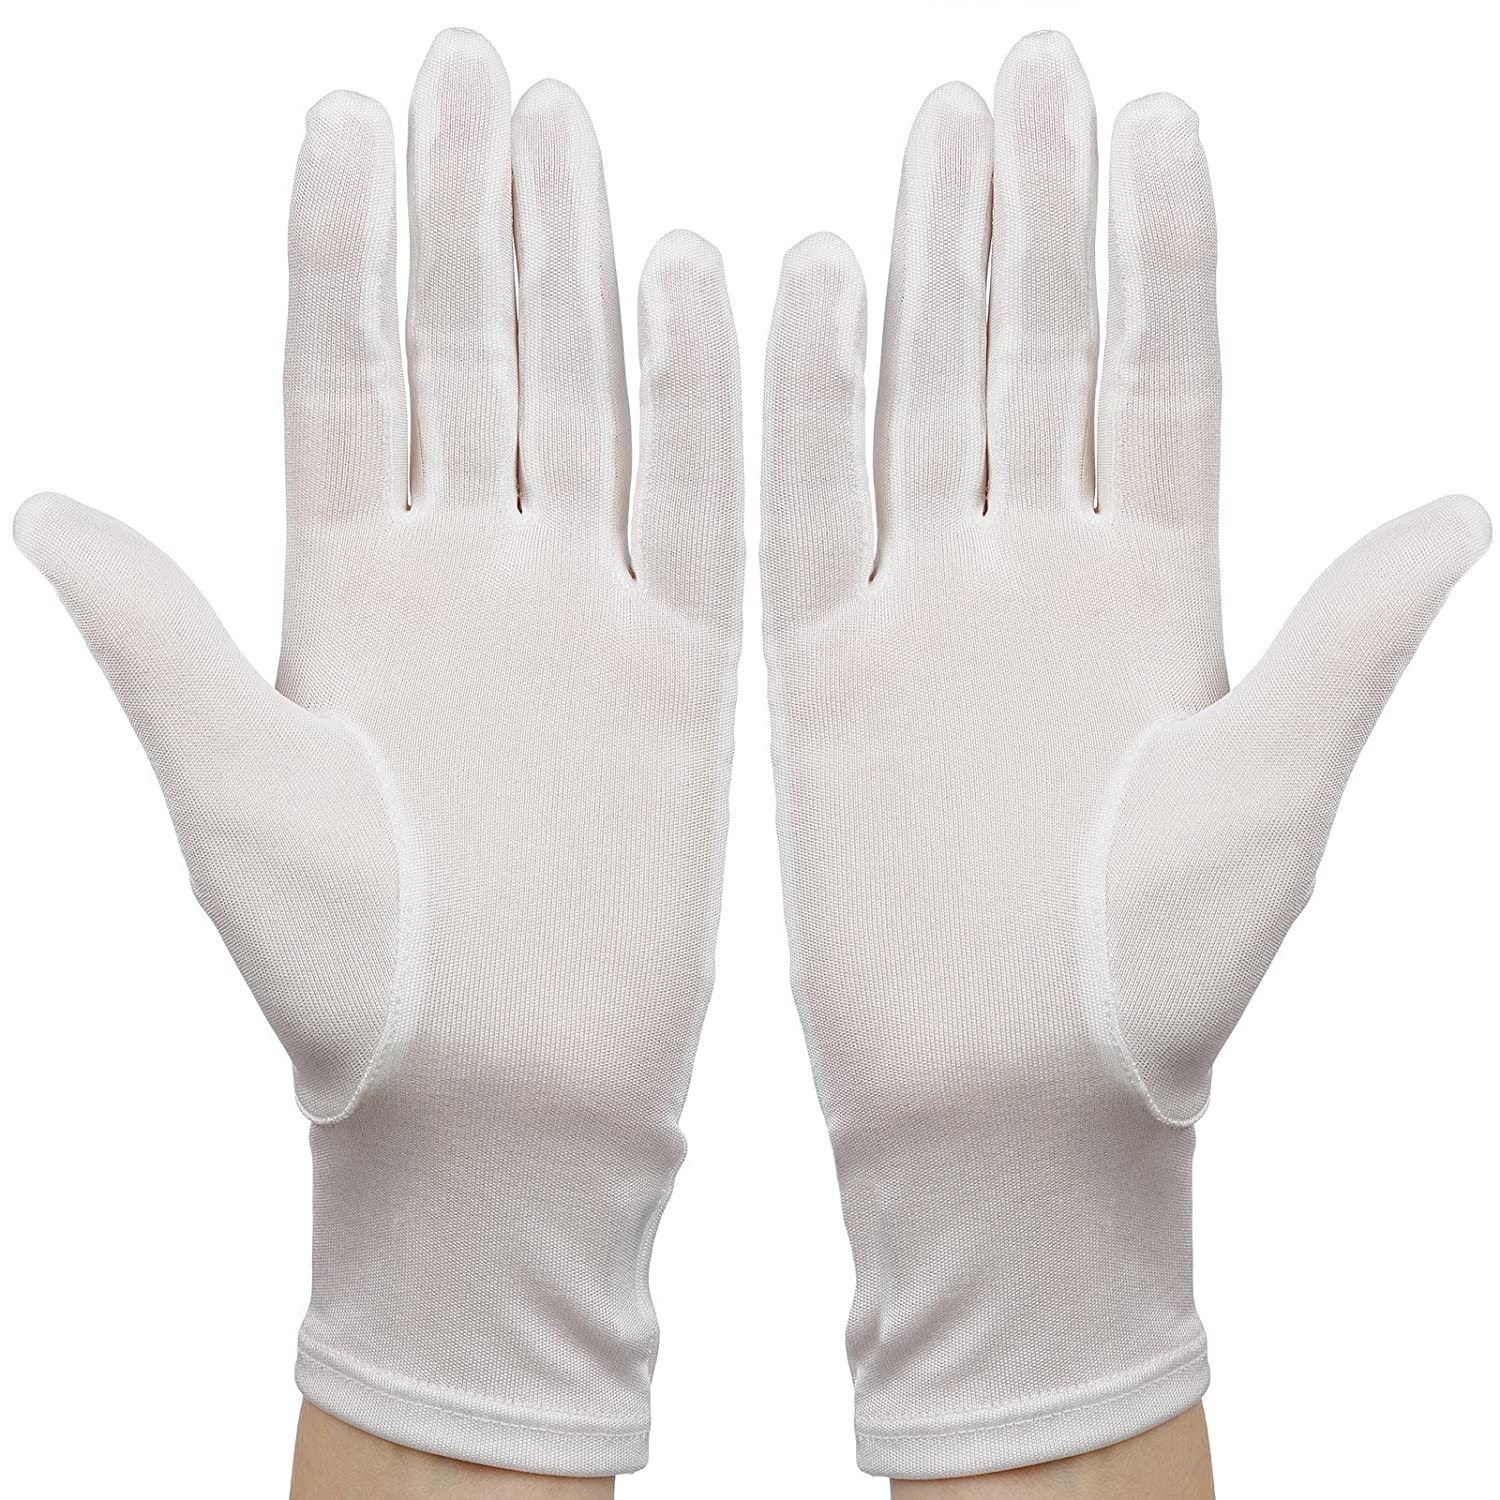 Black cotton gloves for eczema - Membrane White Silk Moisturising Gloves Adult Eczema Hands Skincare One Size Unisex